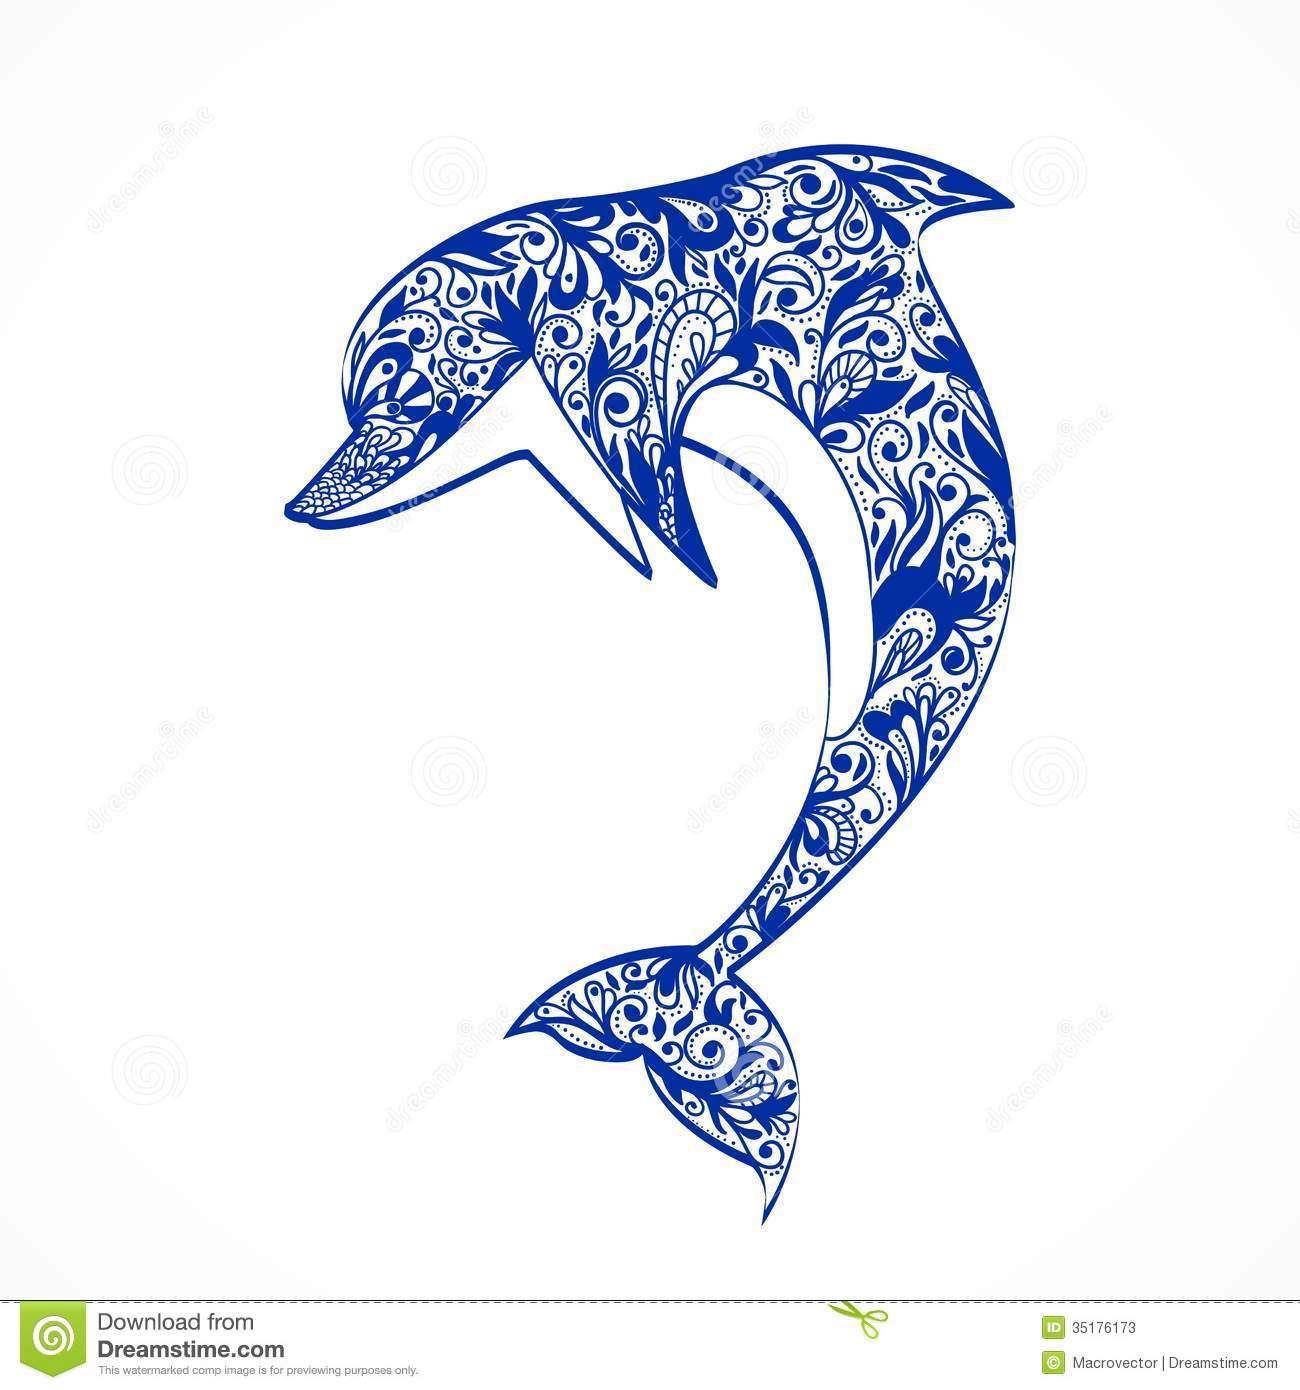 Dolphin symbol isolated vector illustration.